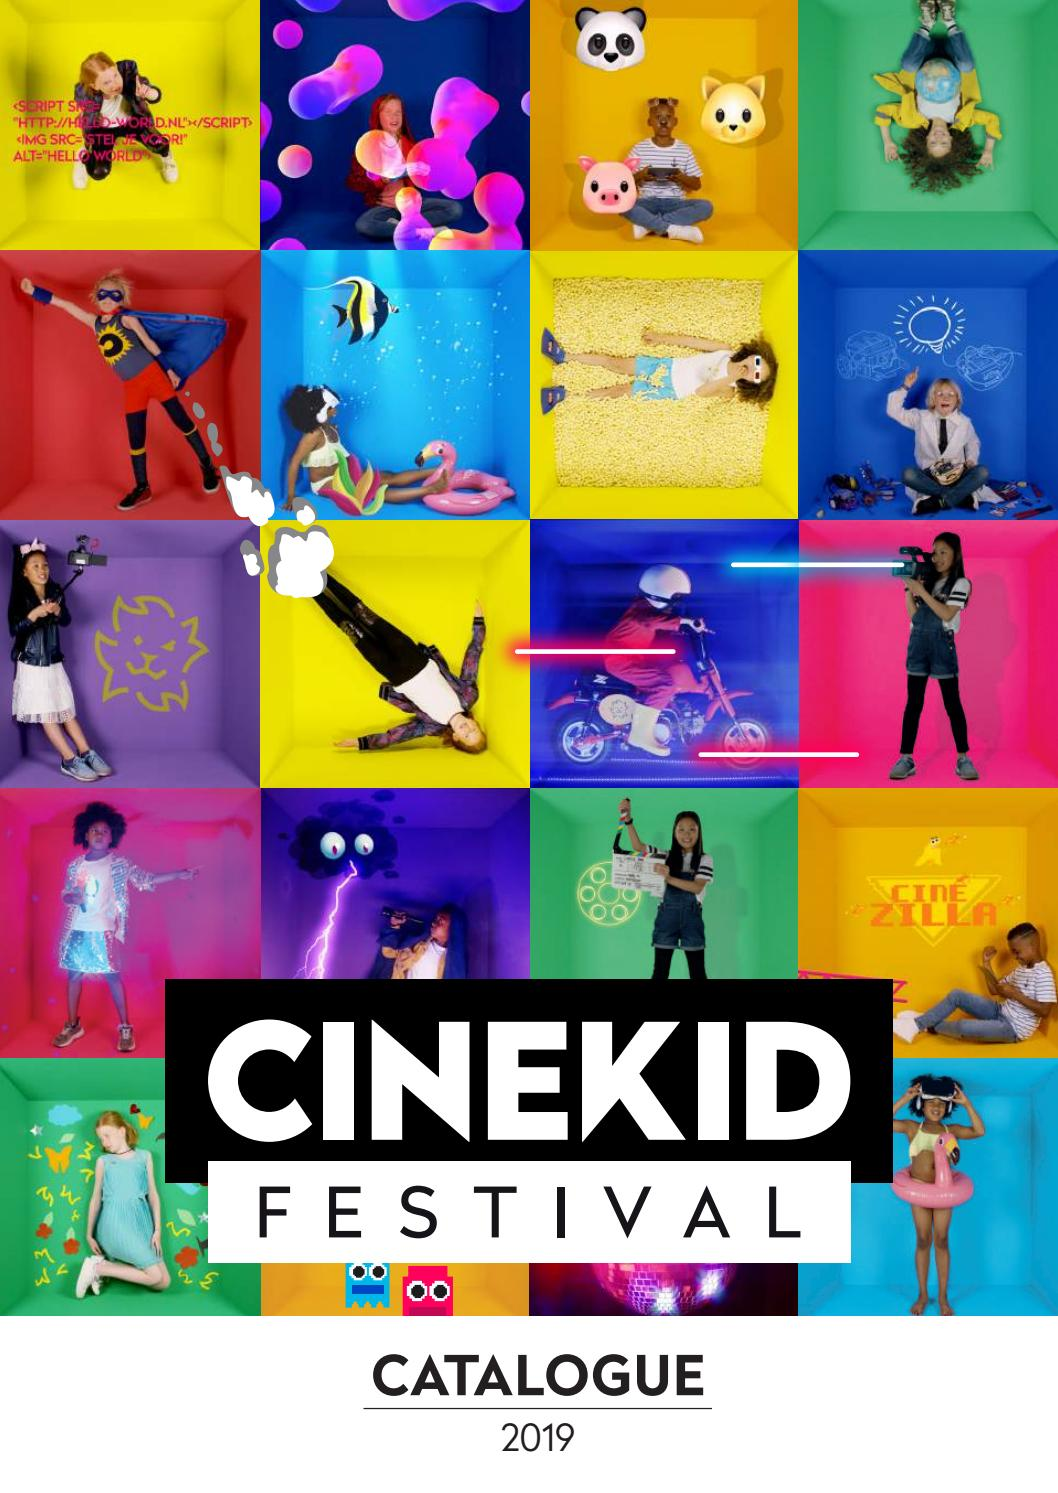 Cinekid Catalogue 2019 By Cinekid Issuu